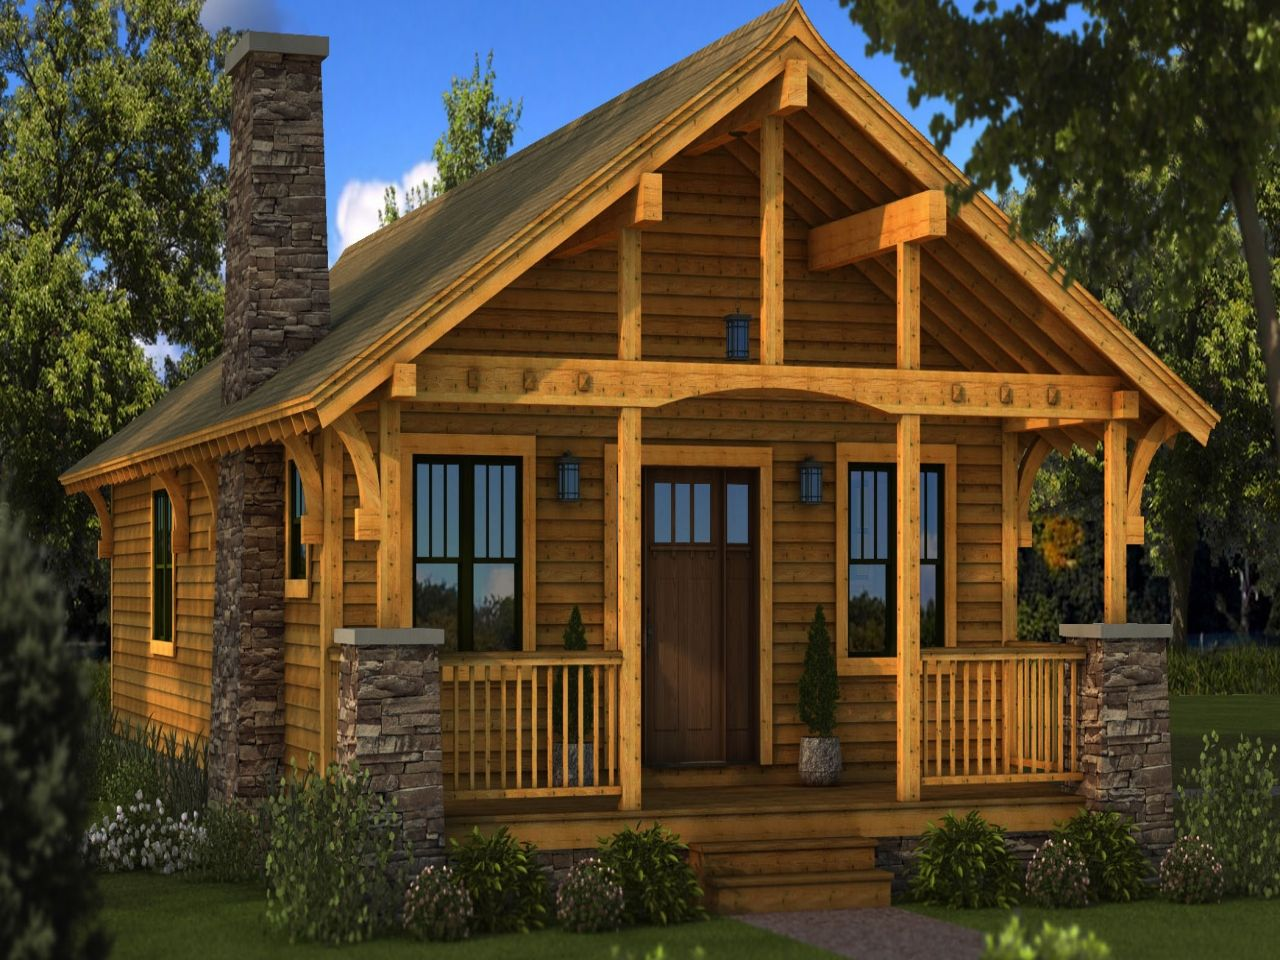 Small log cabin homes plans one story cabin plans for Plans for log cabin homes